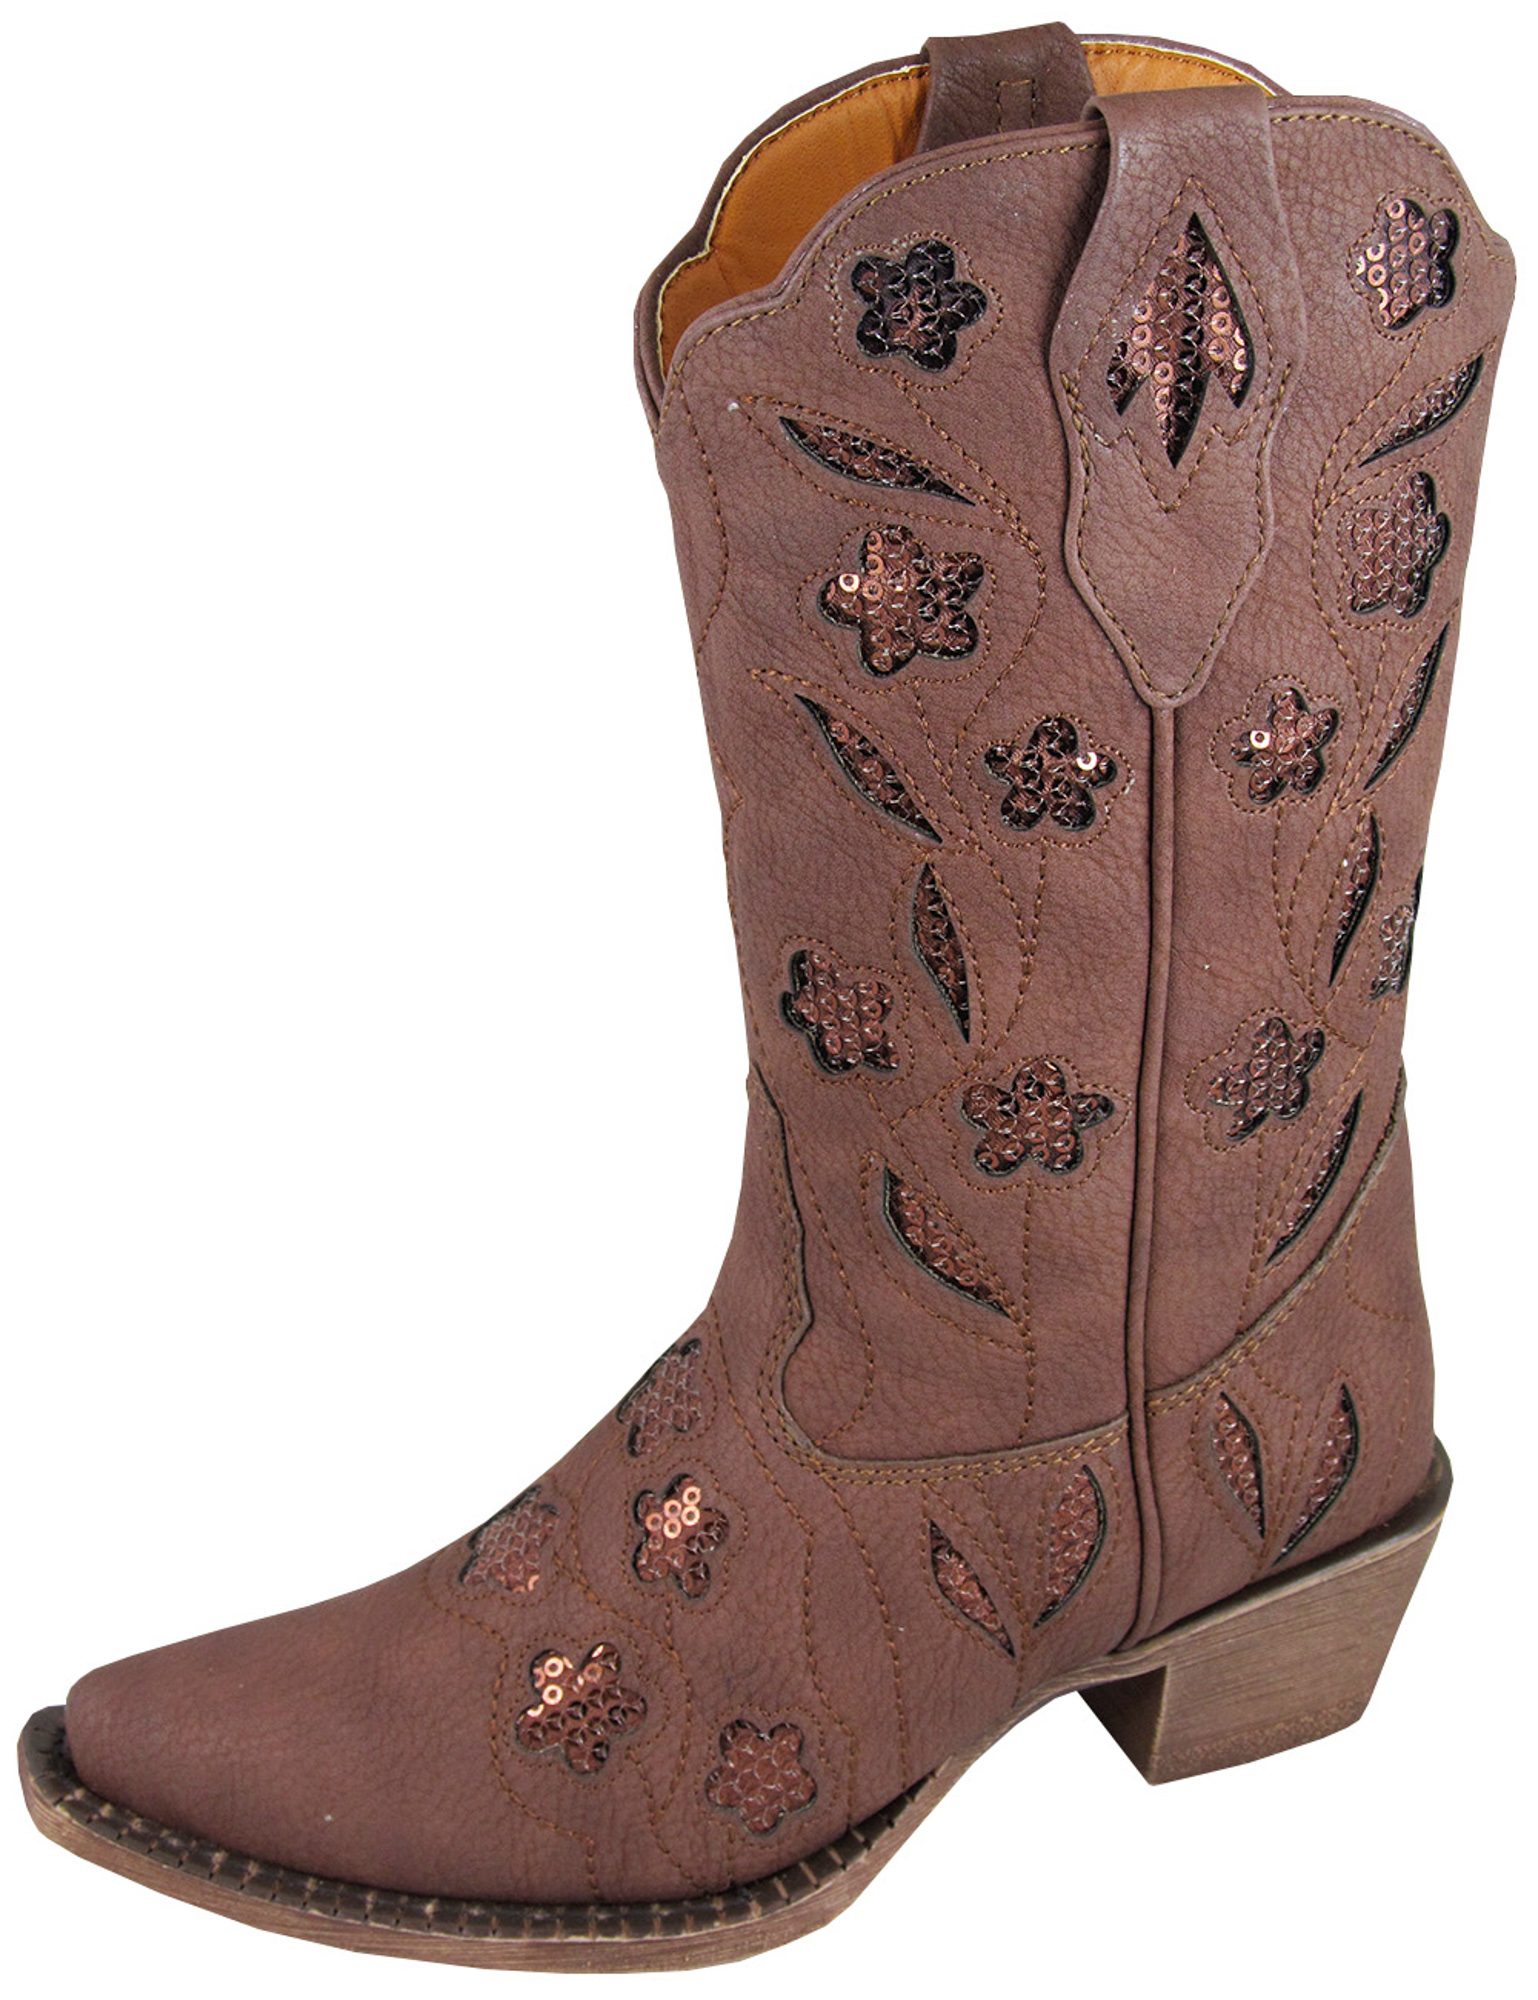 smoky mountain boots children brown faux